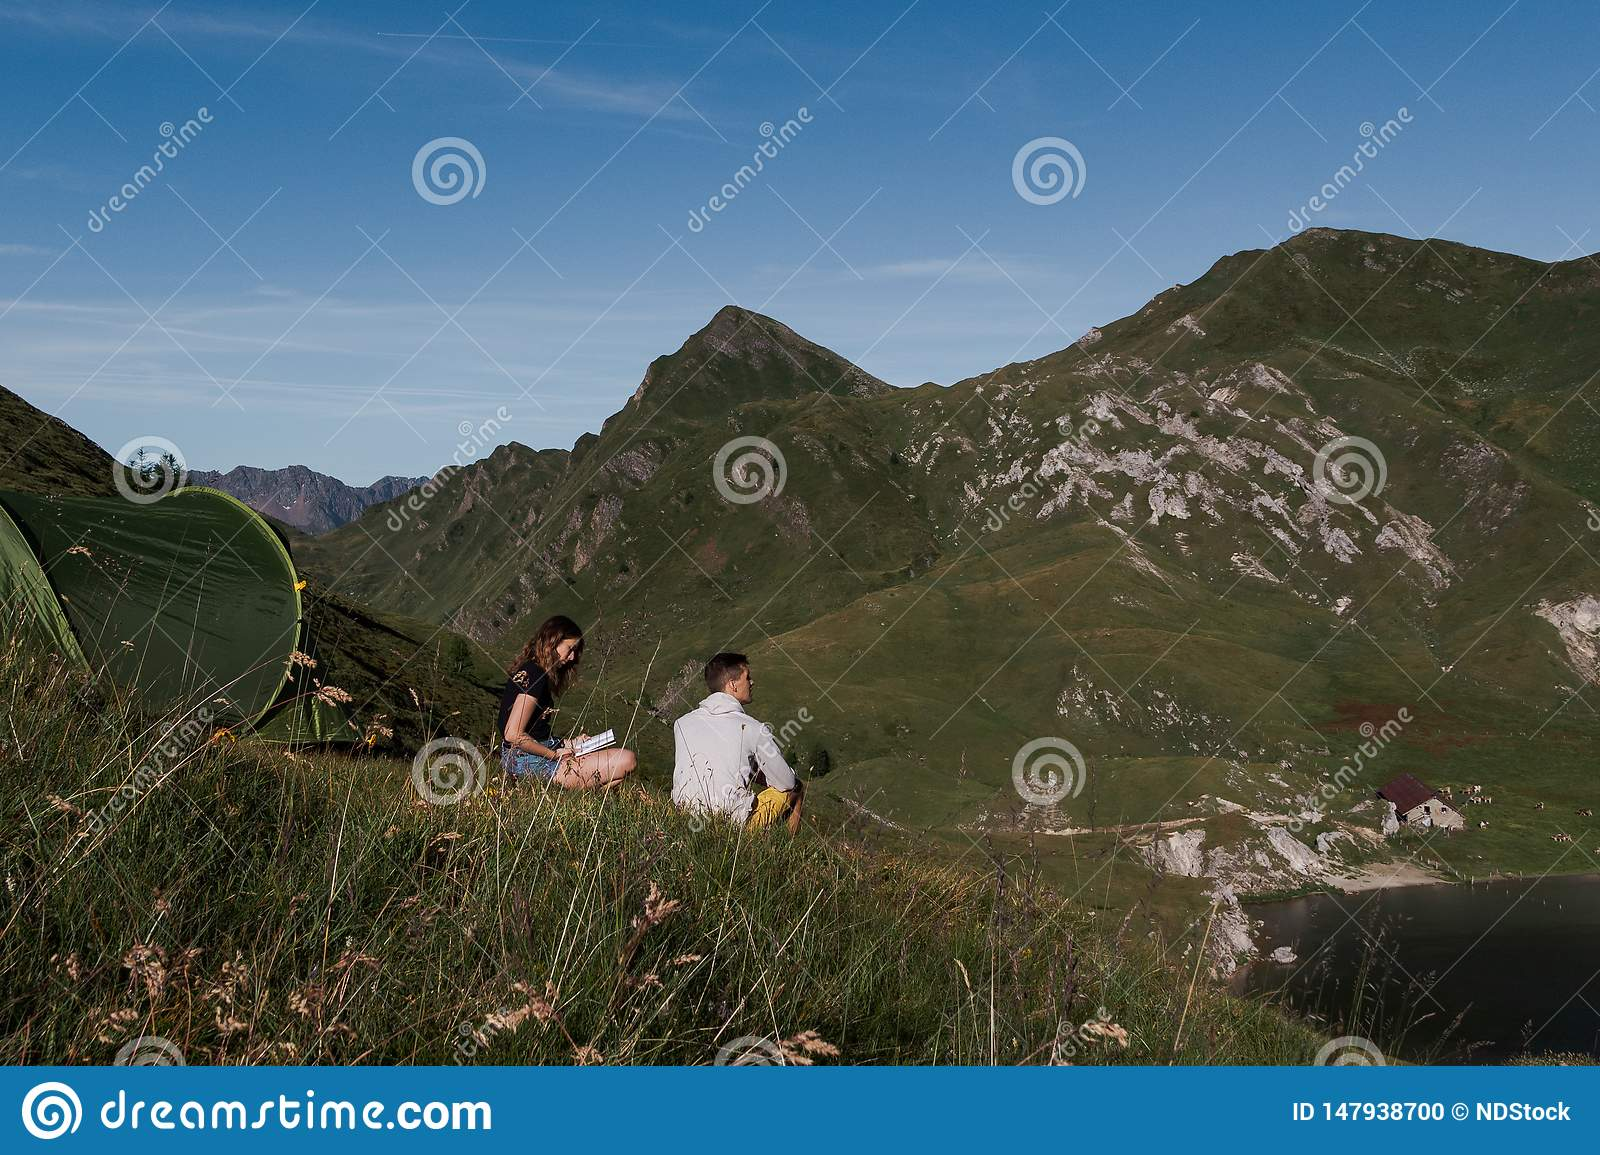 Green tent placed in a peaceful down in the mountains of switzerland. Girl reading a book, boy admires the view